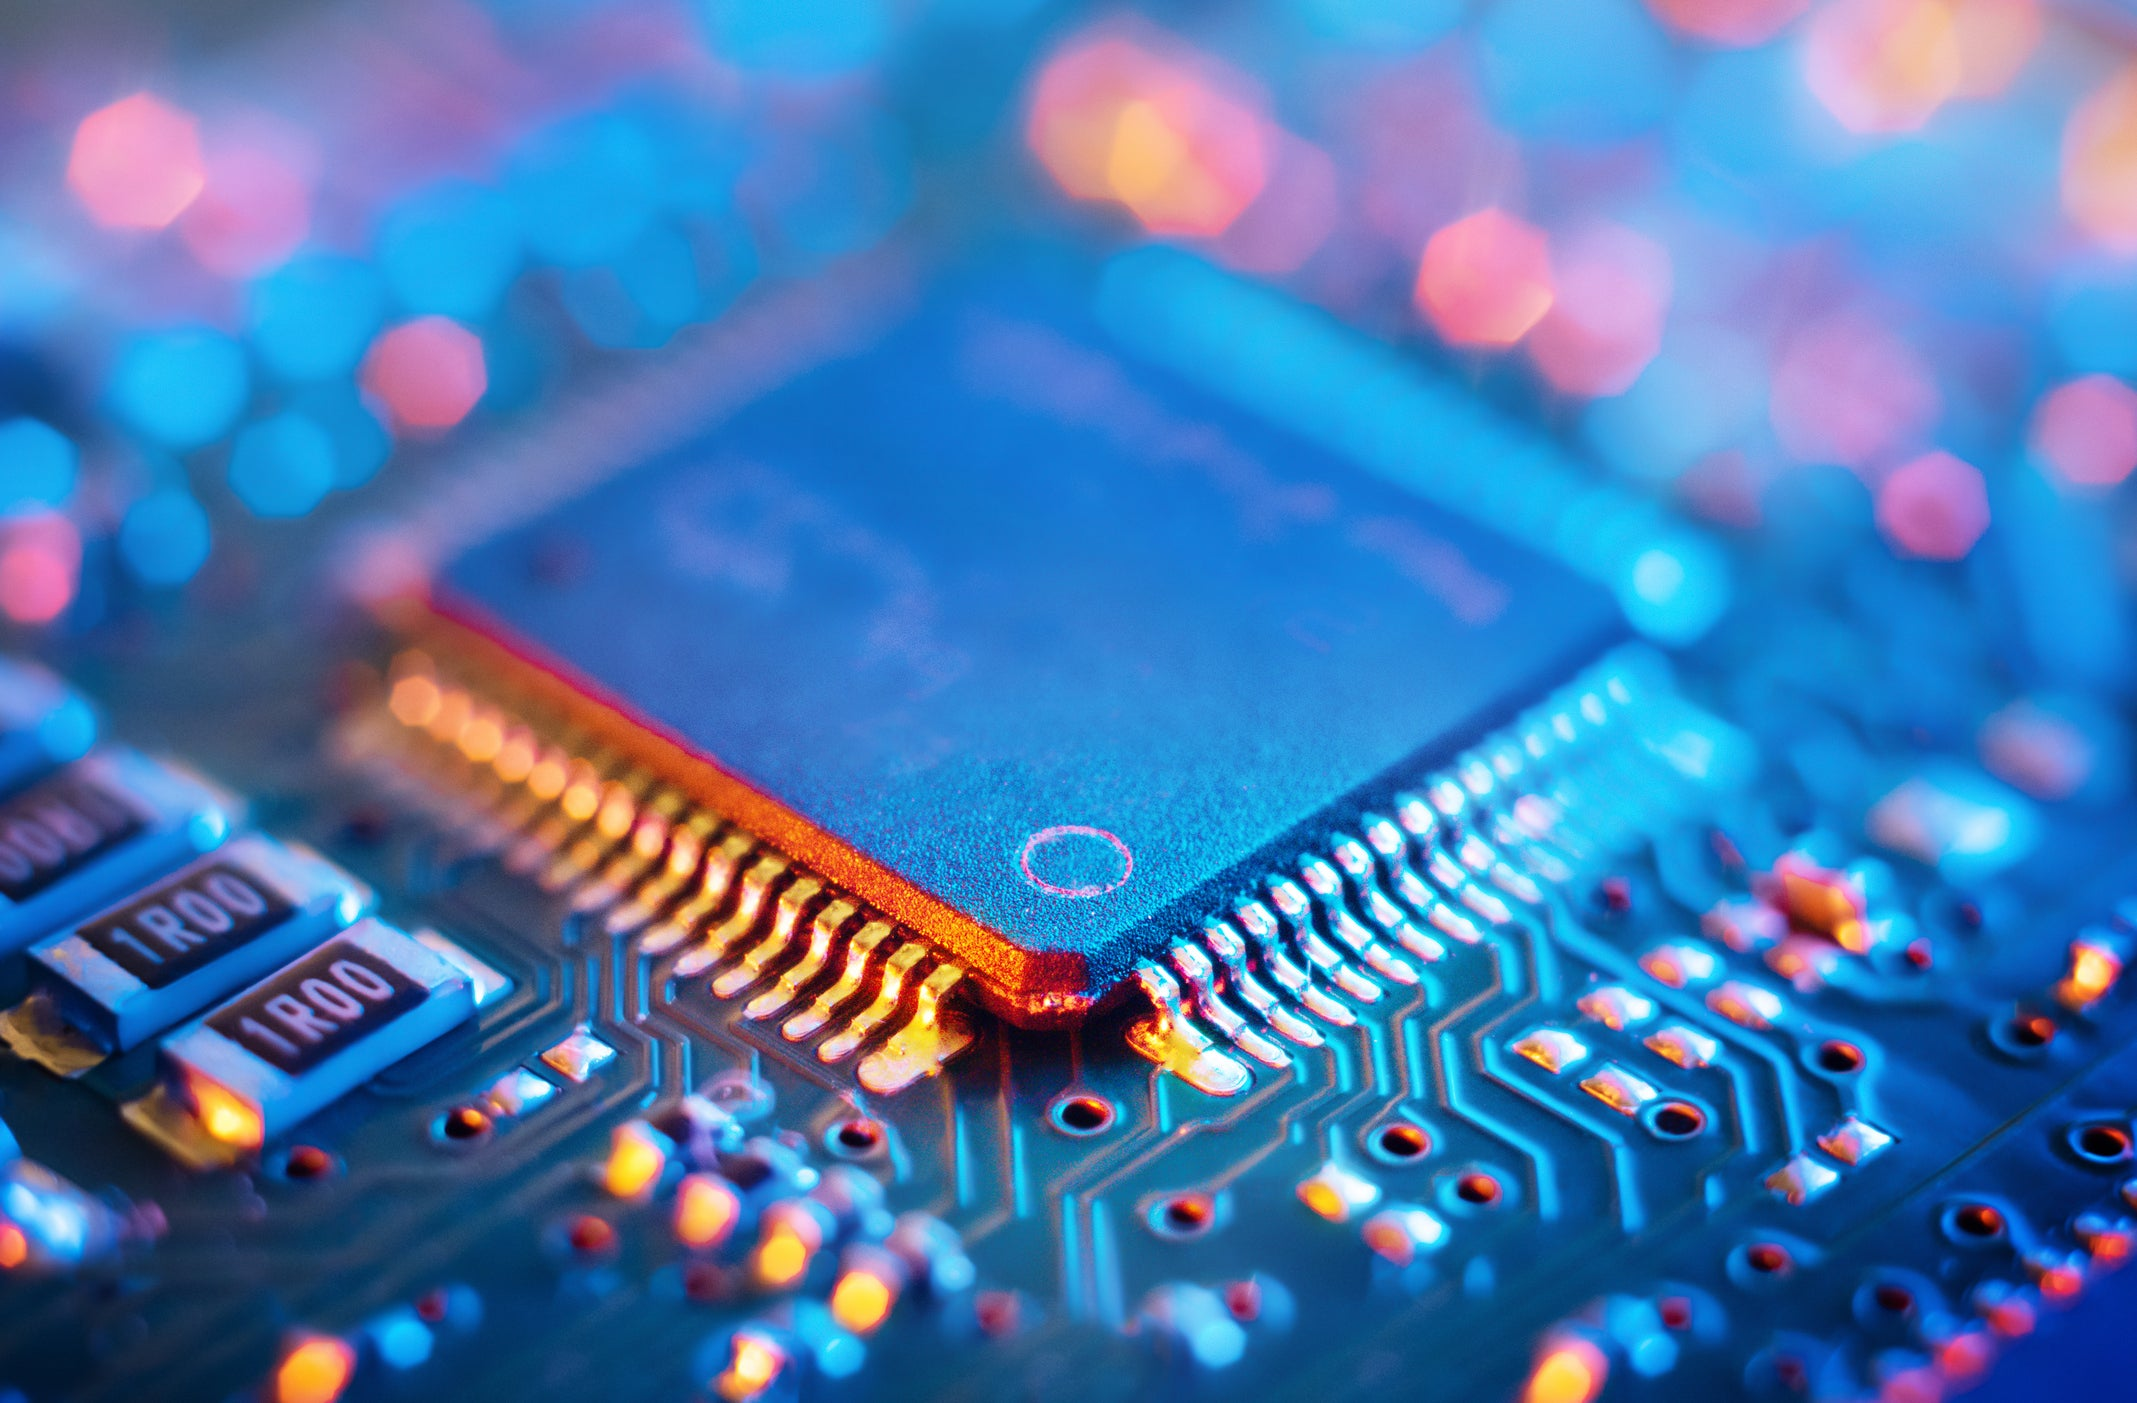 Magnachip Semiconductor (MX) Stock Is About To Sharply Rise